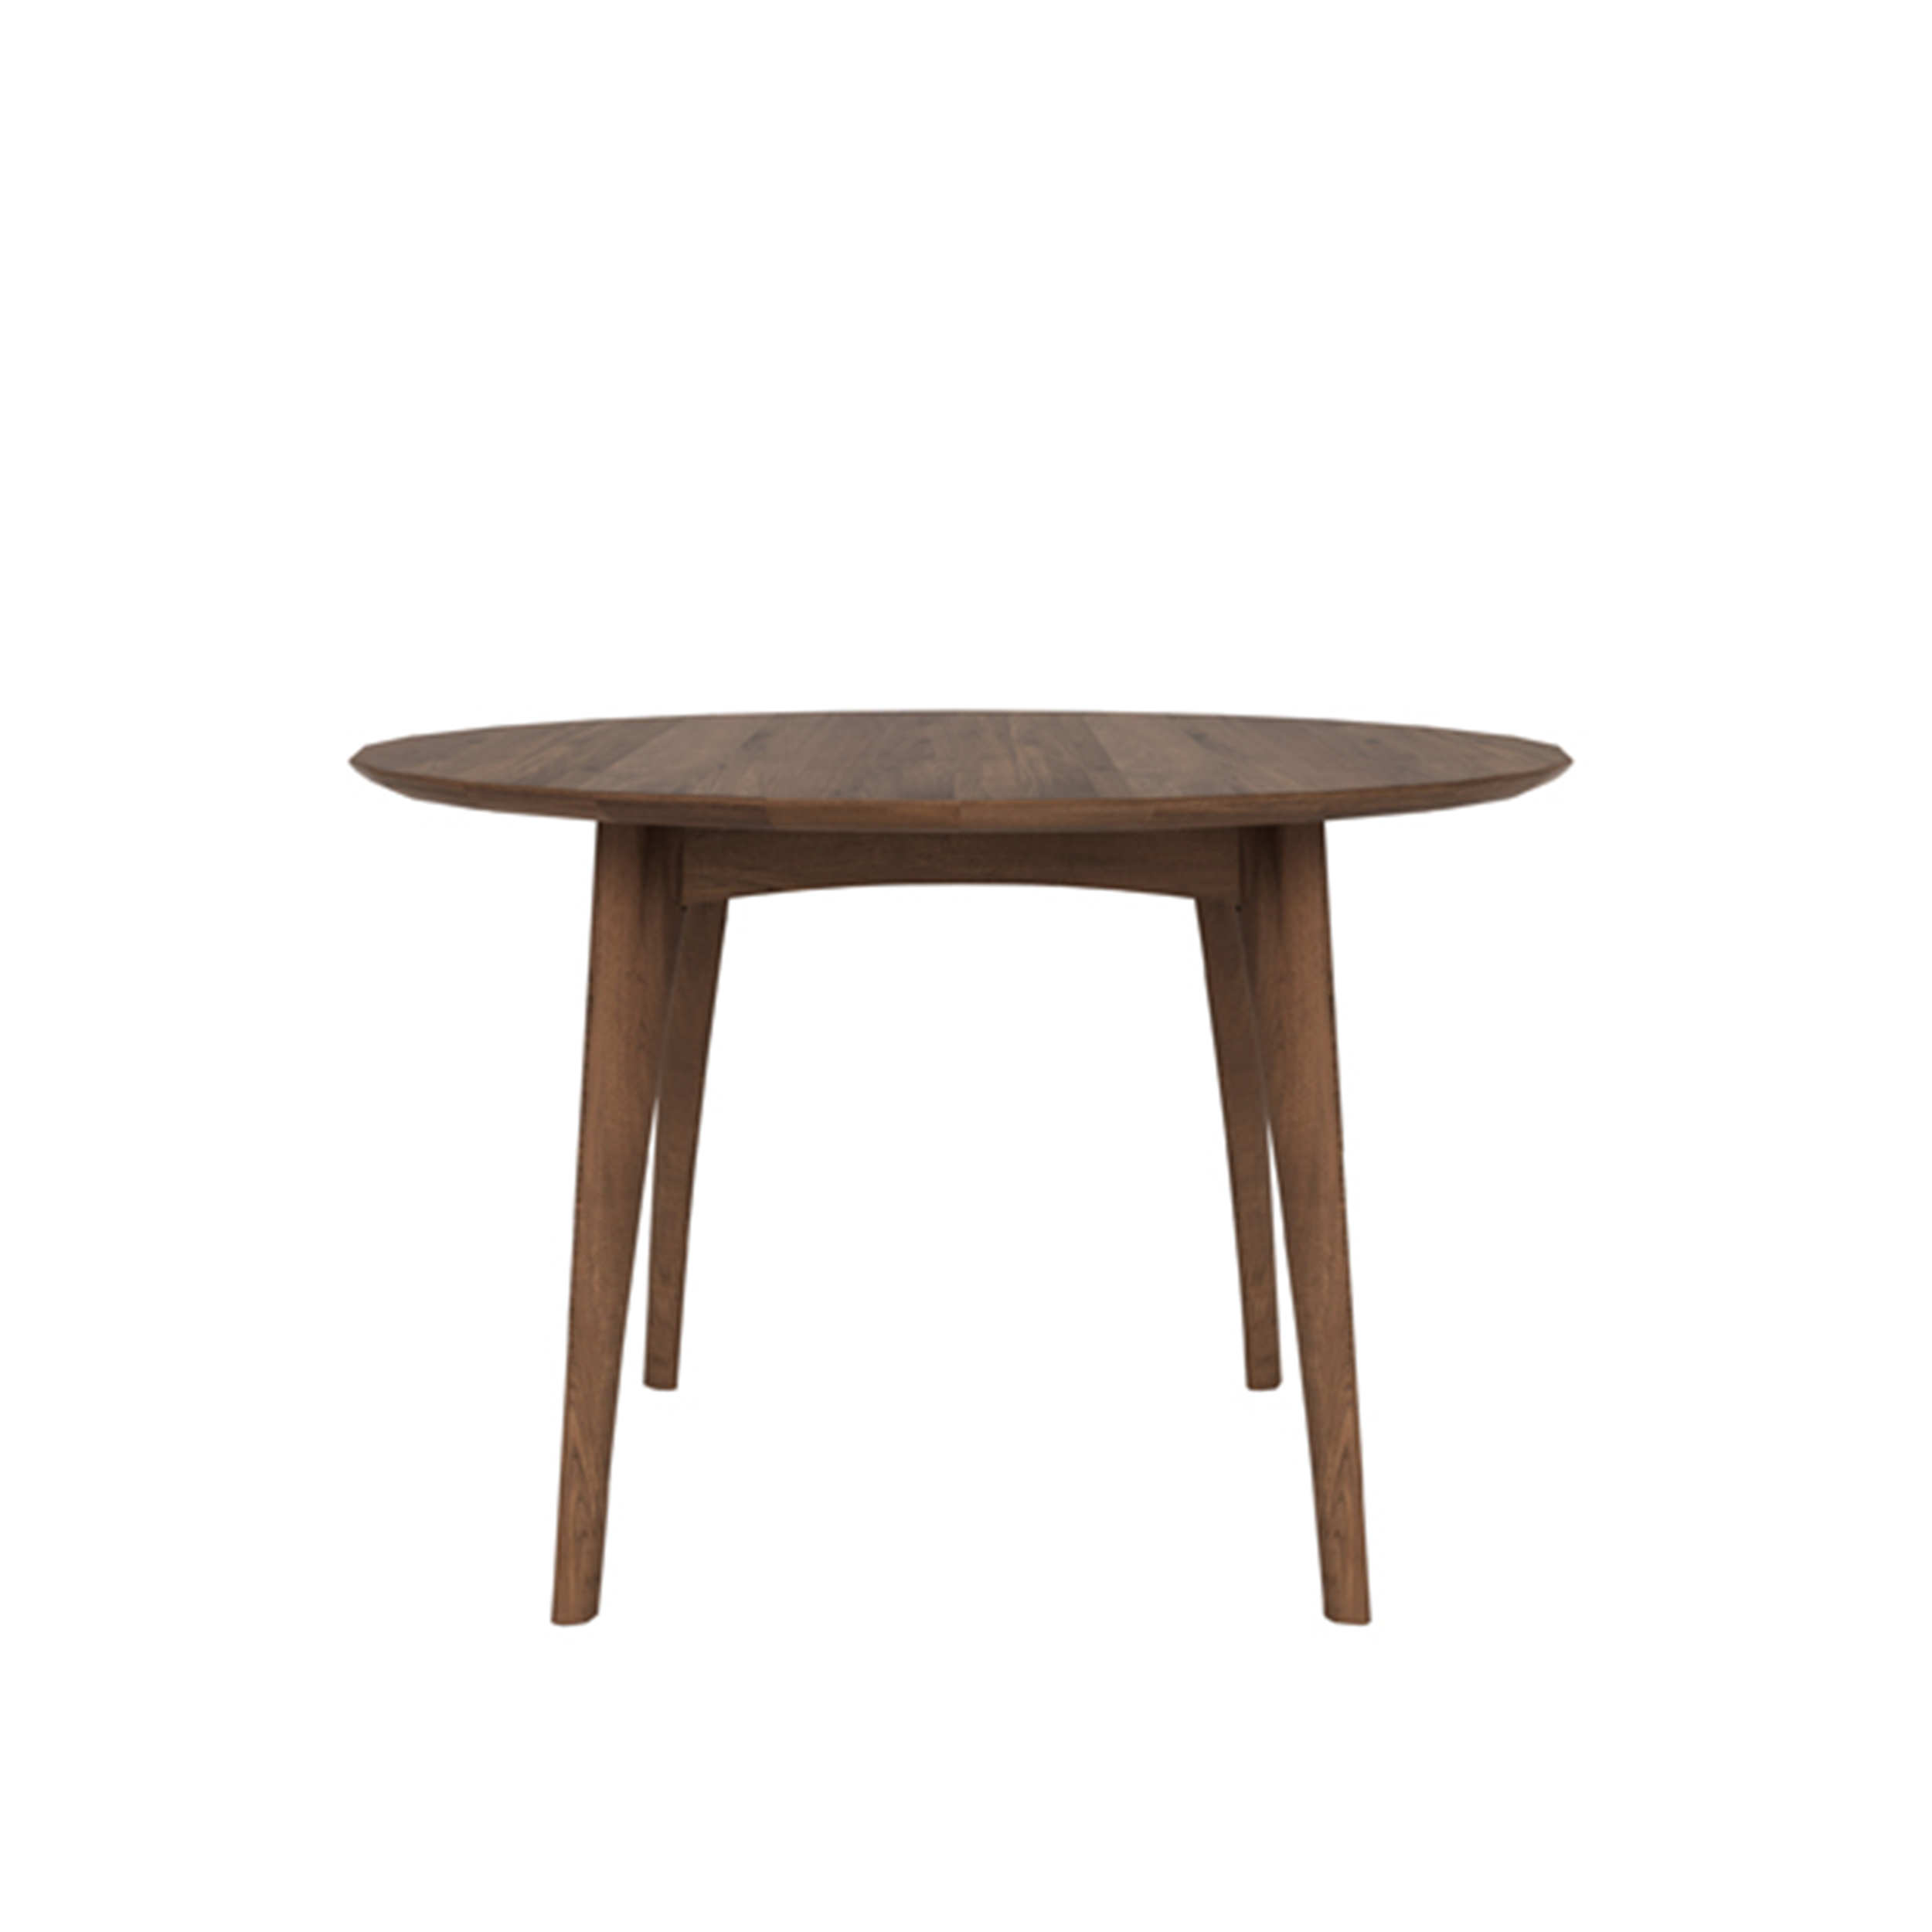 TGE-043031-Walnut-Osso-Dining-Table-Round-120x120x76_f.jpg.png